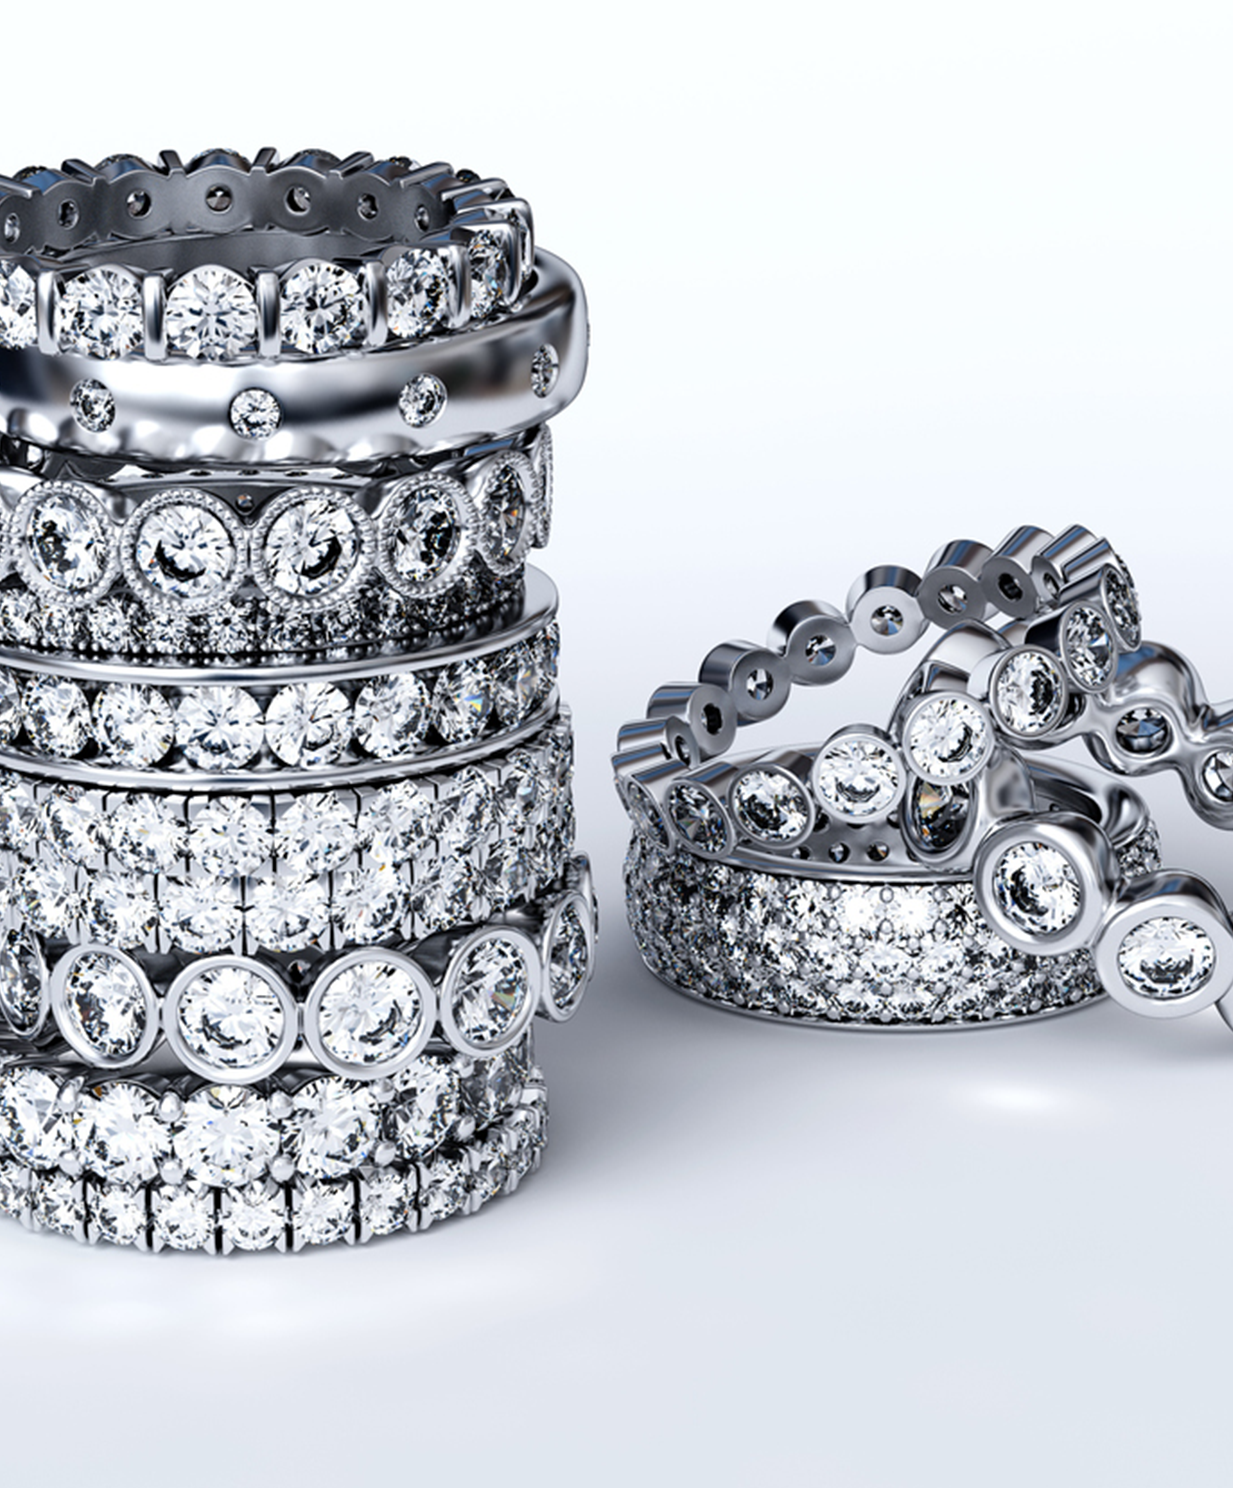 18 karat white Gold Diamond wedding bands stacked on one another